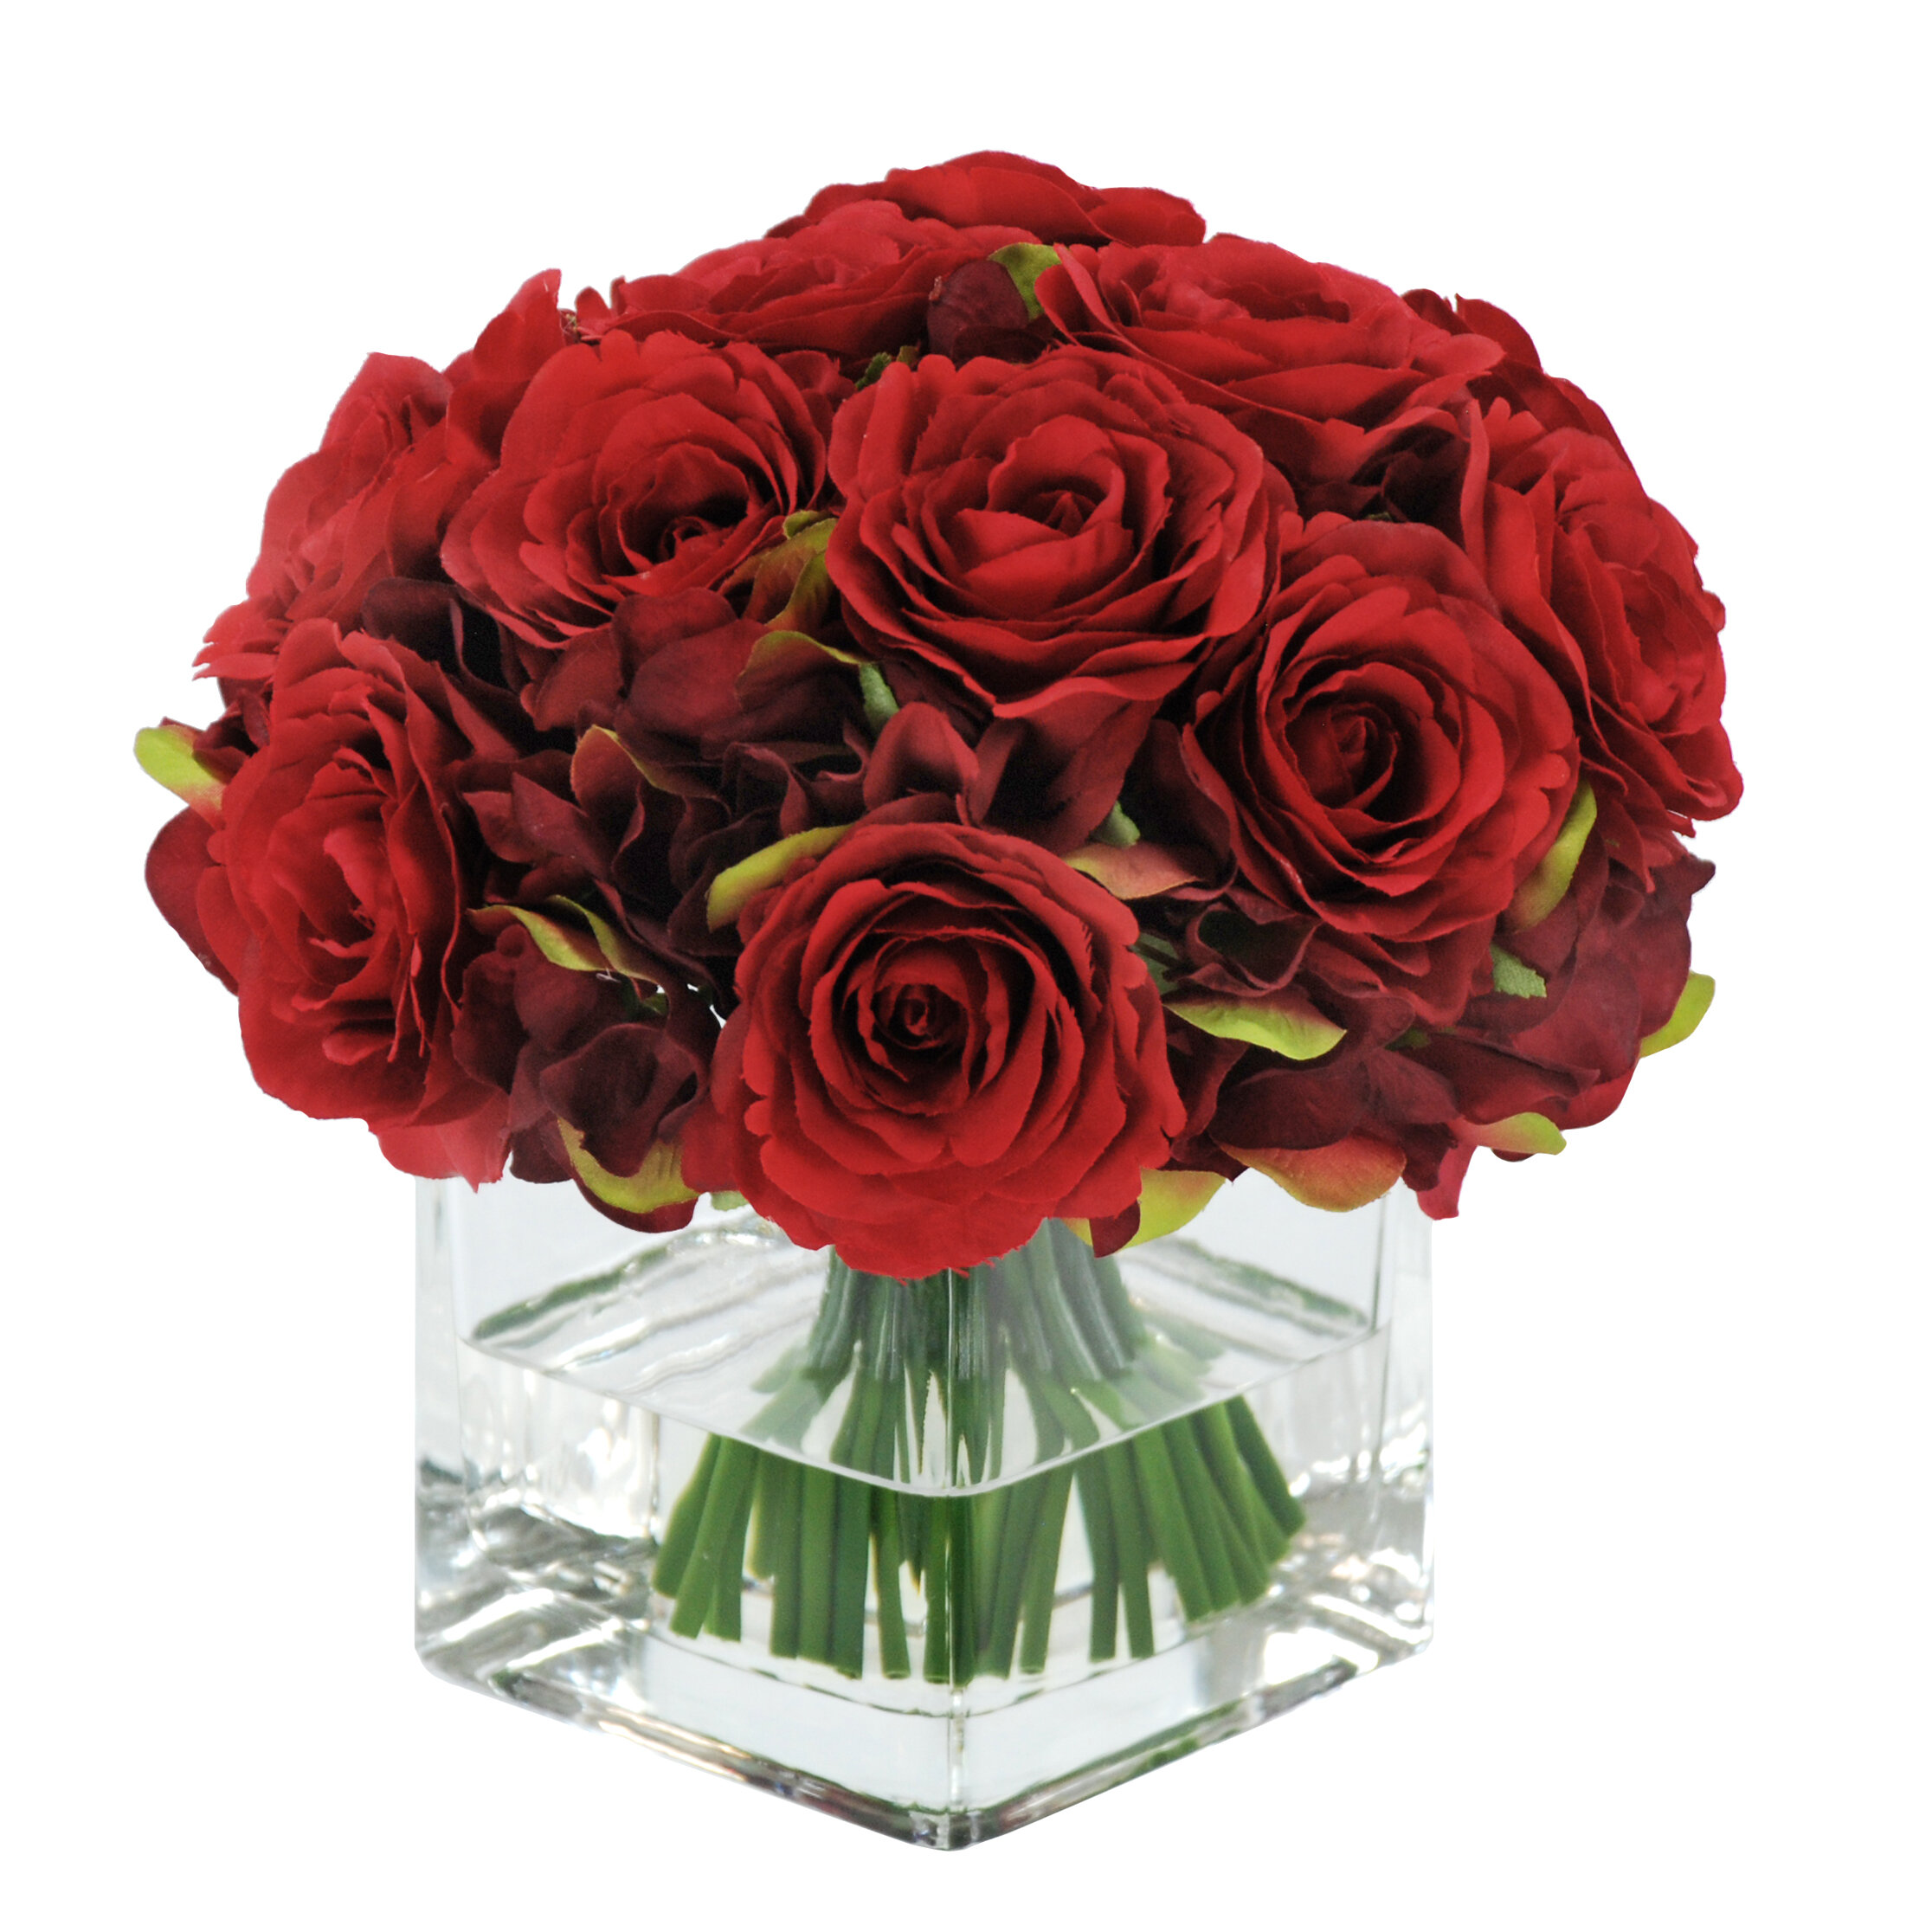 Winward silks rose bouquet in square vase floral arrangements winward silks rose bouquet in square vase floral arrangements reviews wayfair reviewsmspy